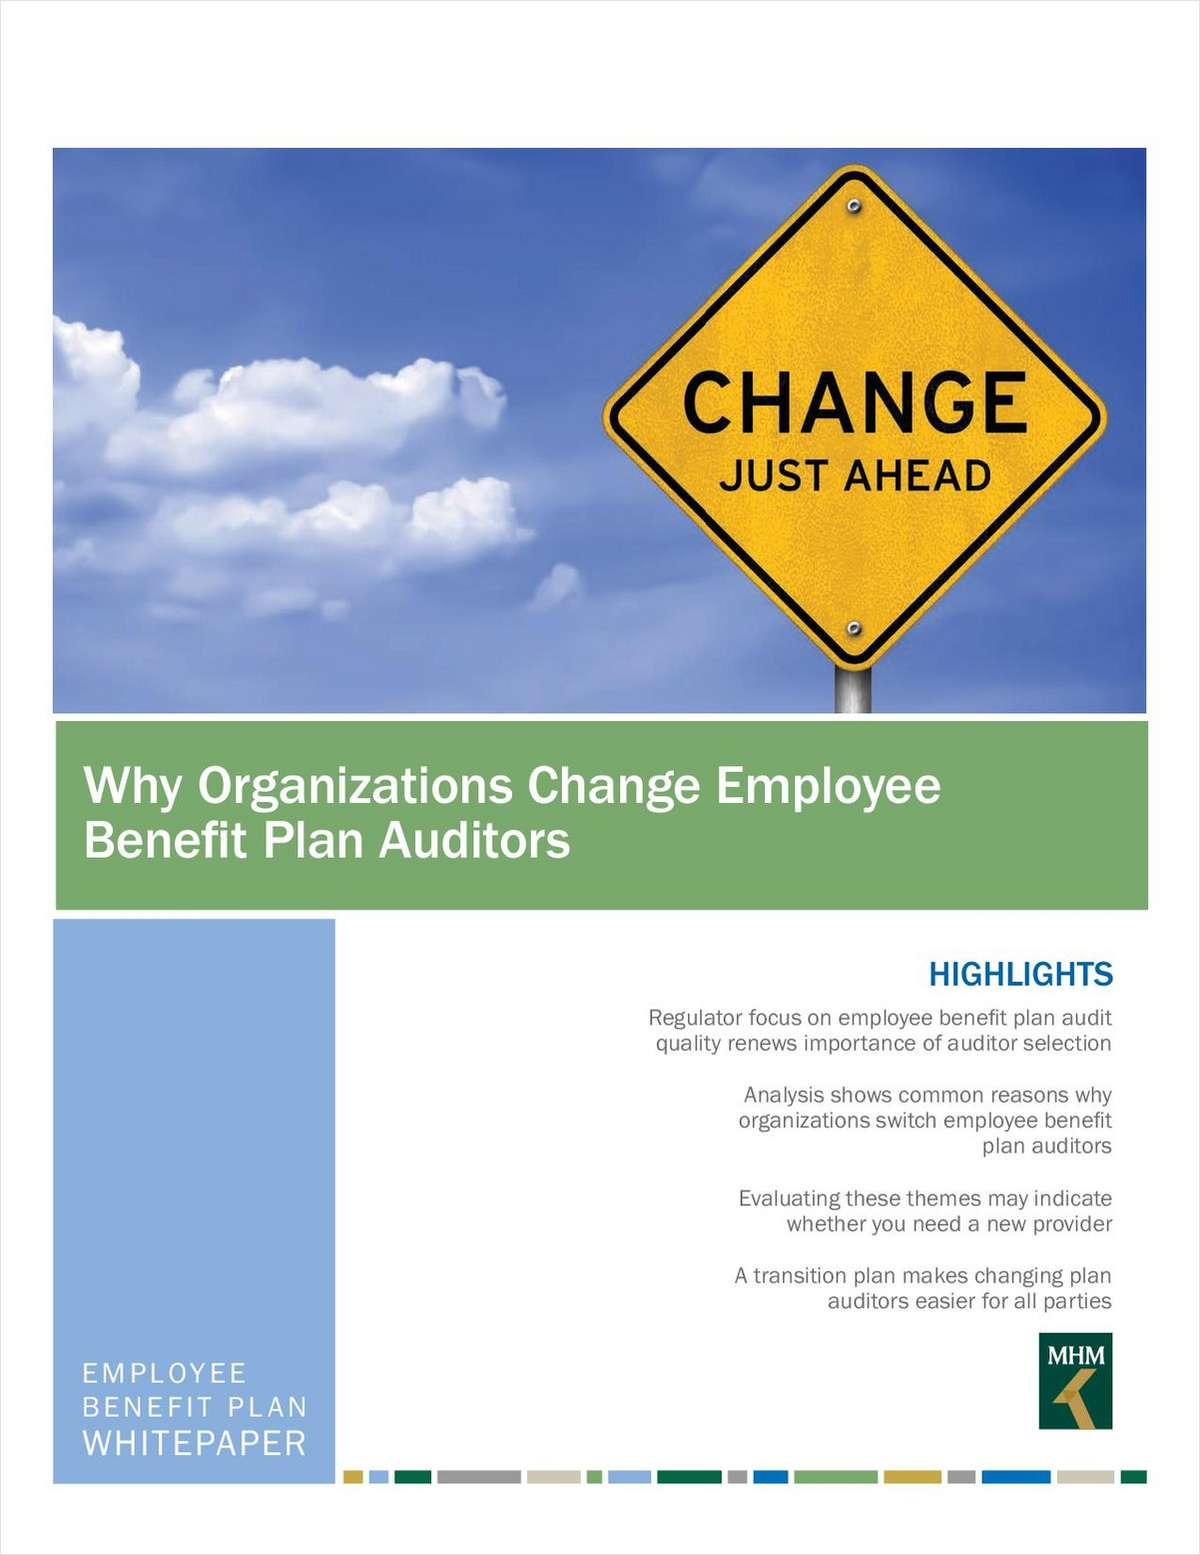 Why Organizations Change Employee Benefit Plan Auditors